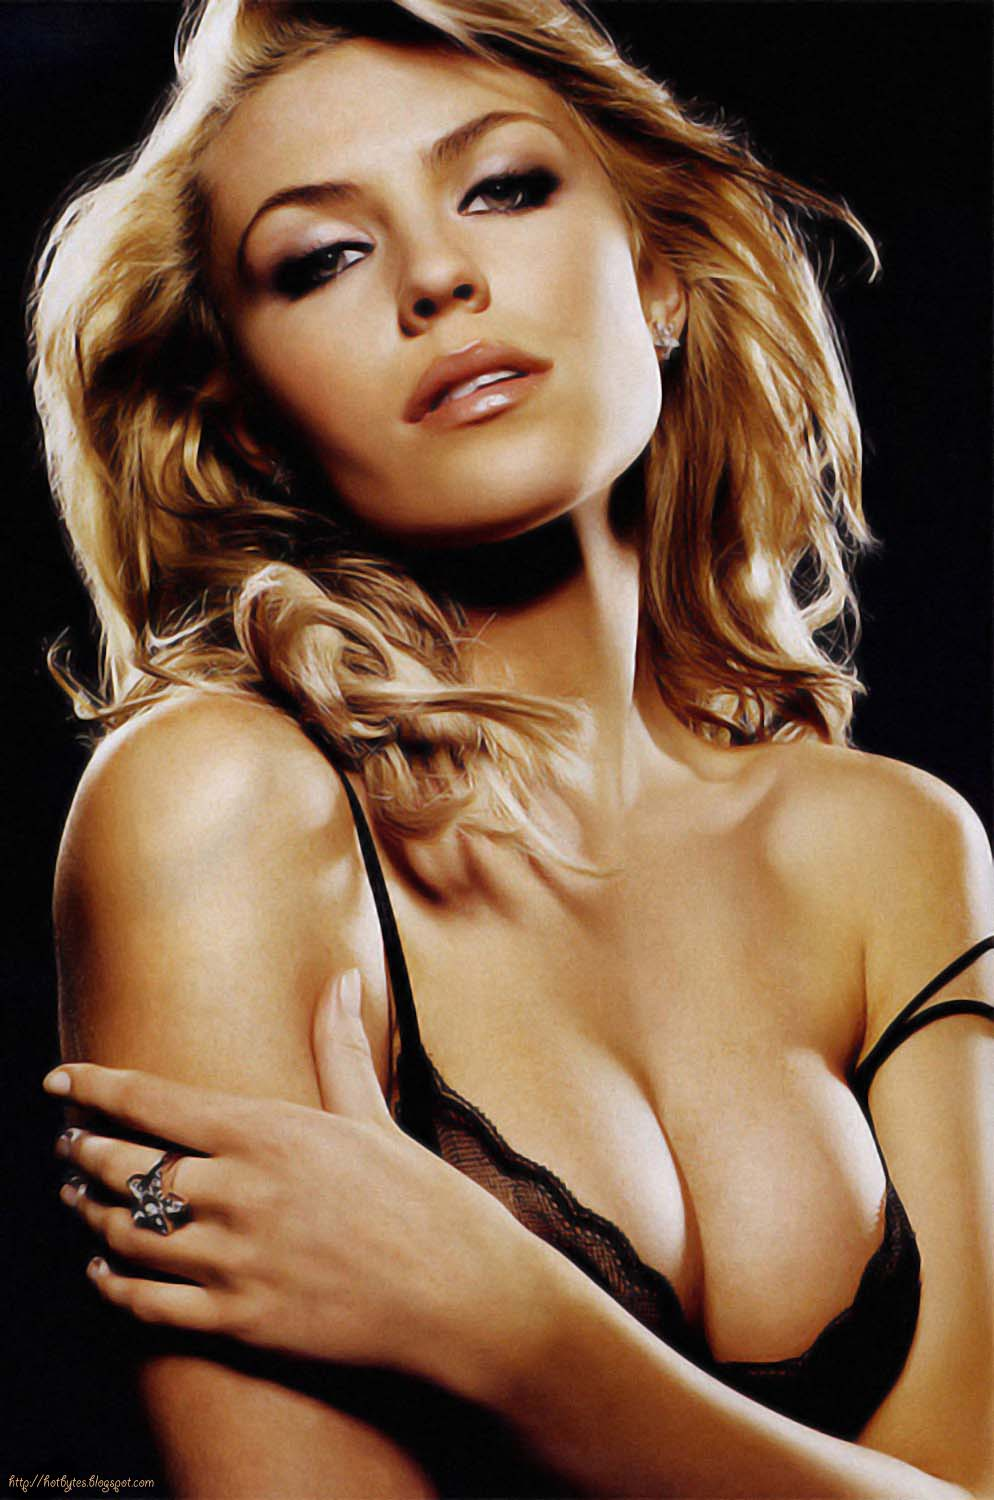 Actress Hollywood: Abbey clancy